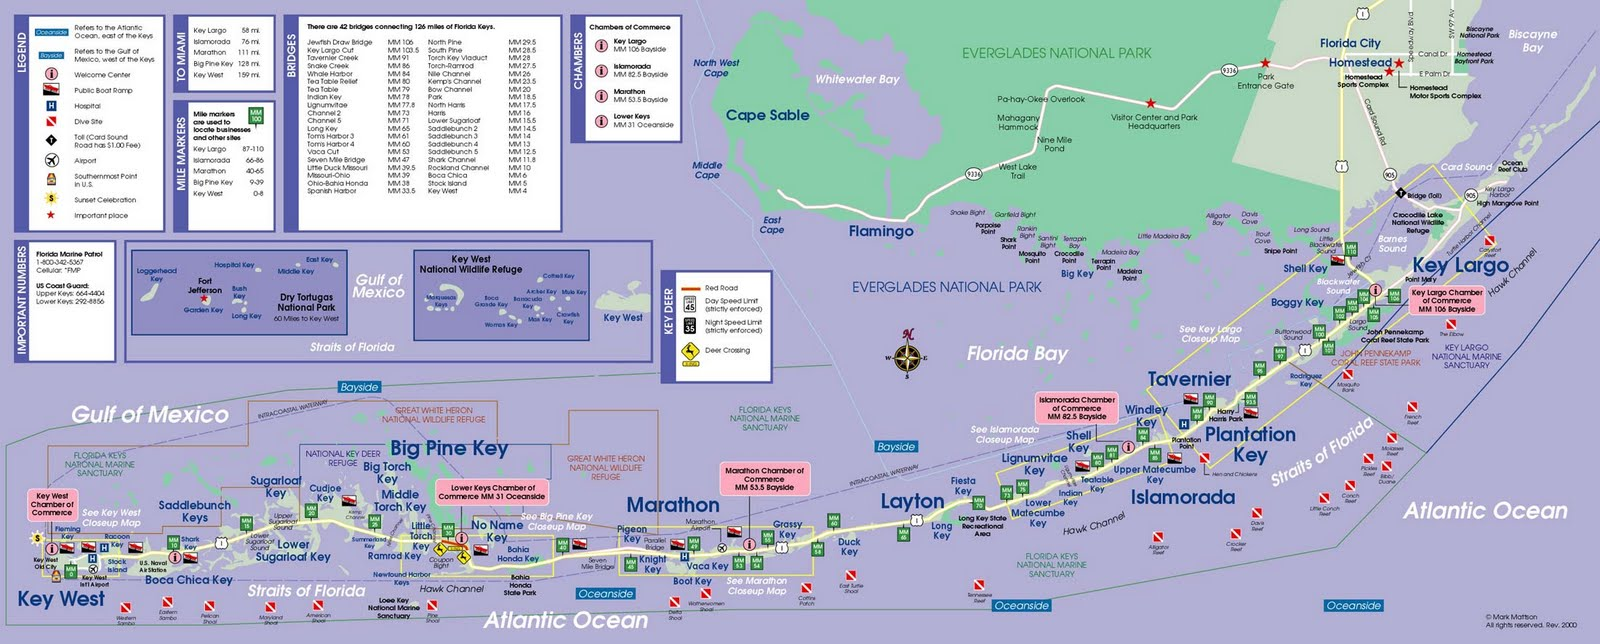 florida coast map with Florida Keys Map 09 on Ocklawaha River also I 50 Stati Degli Usa furthermore The Blue Grotto Of Capri Italy moreover Fort Myers Beach Night Life Downtown Dining furthermore Croatia.